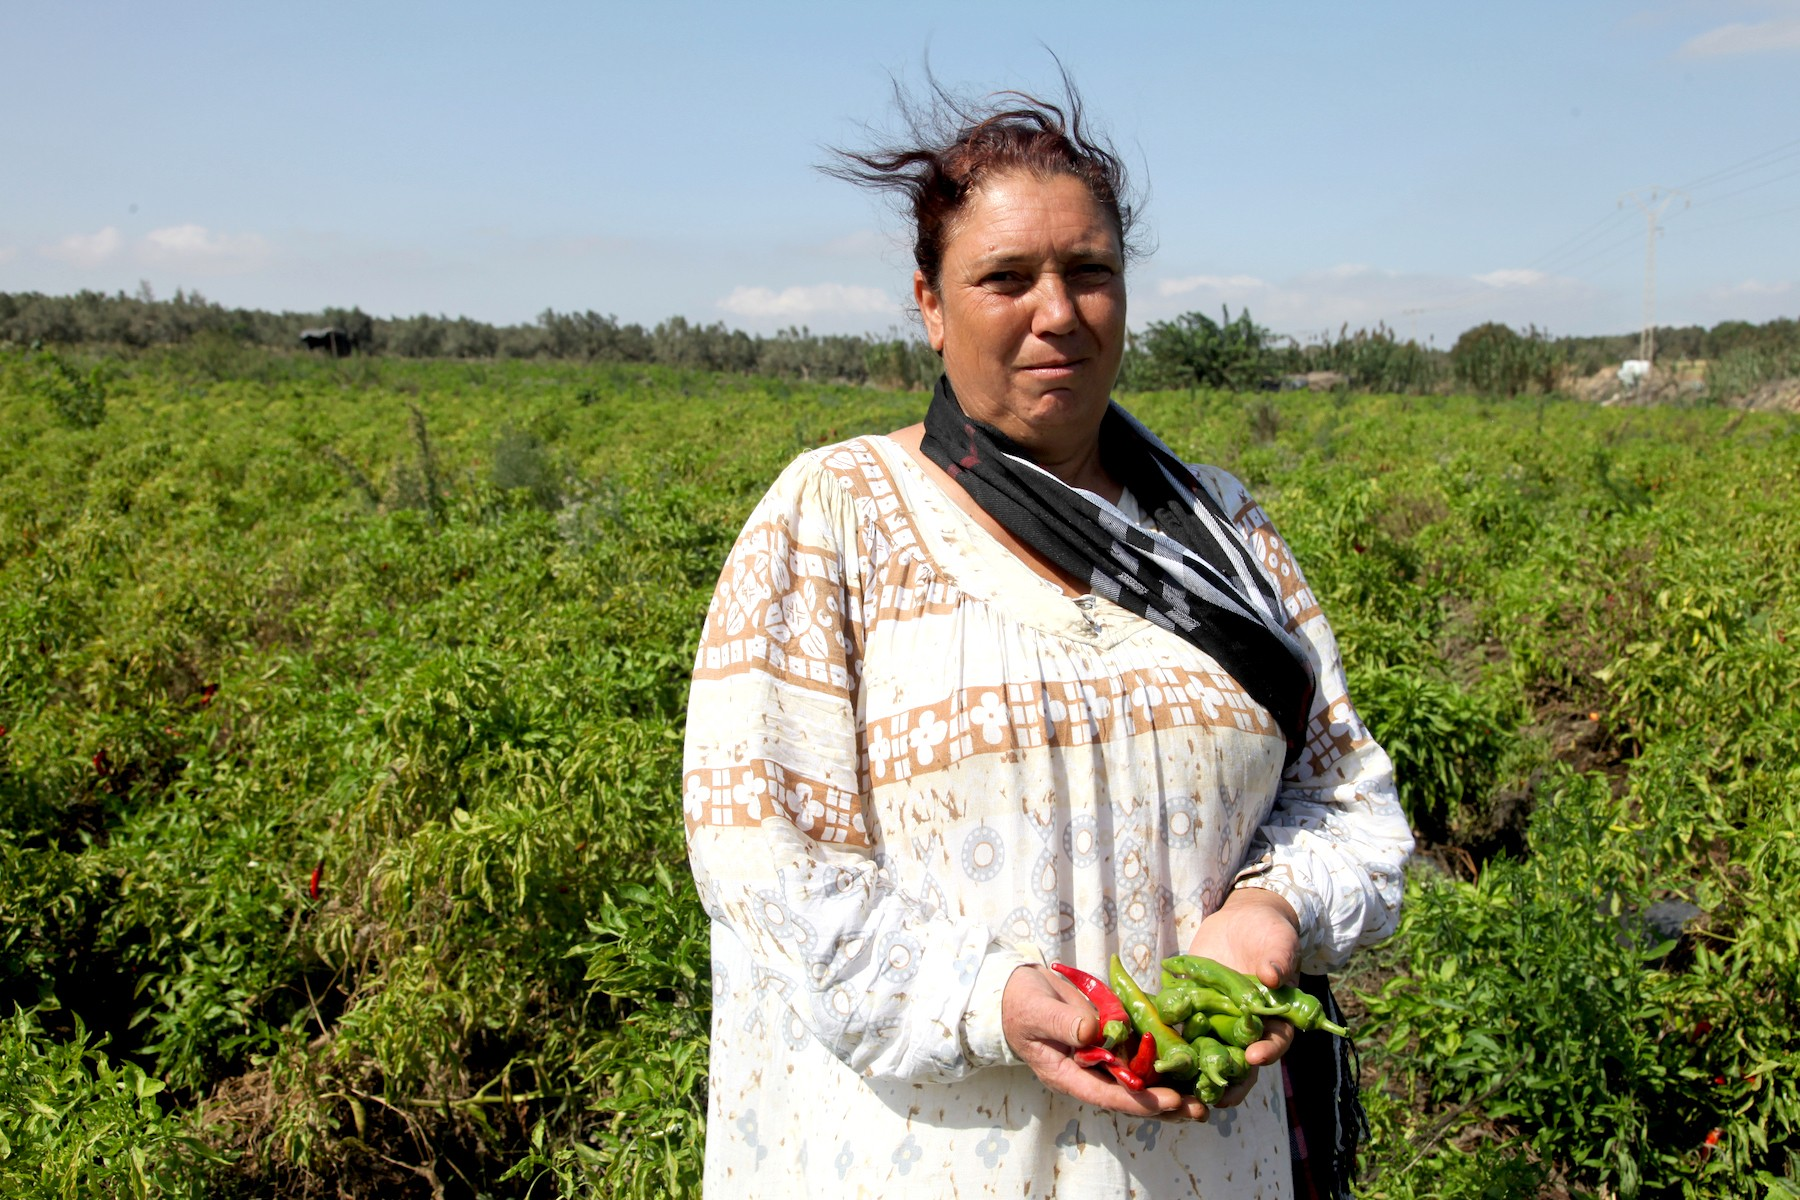 woman-in-field-with-hot-peppers